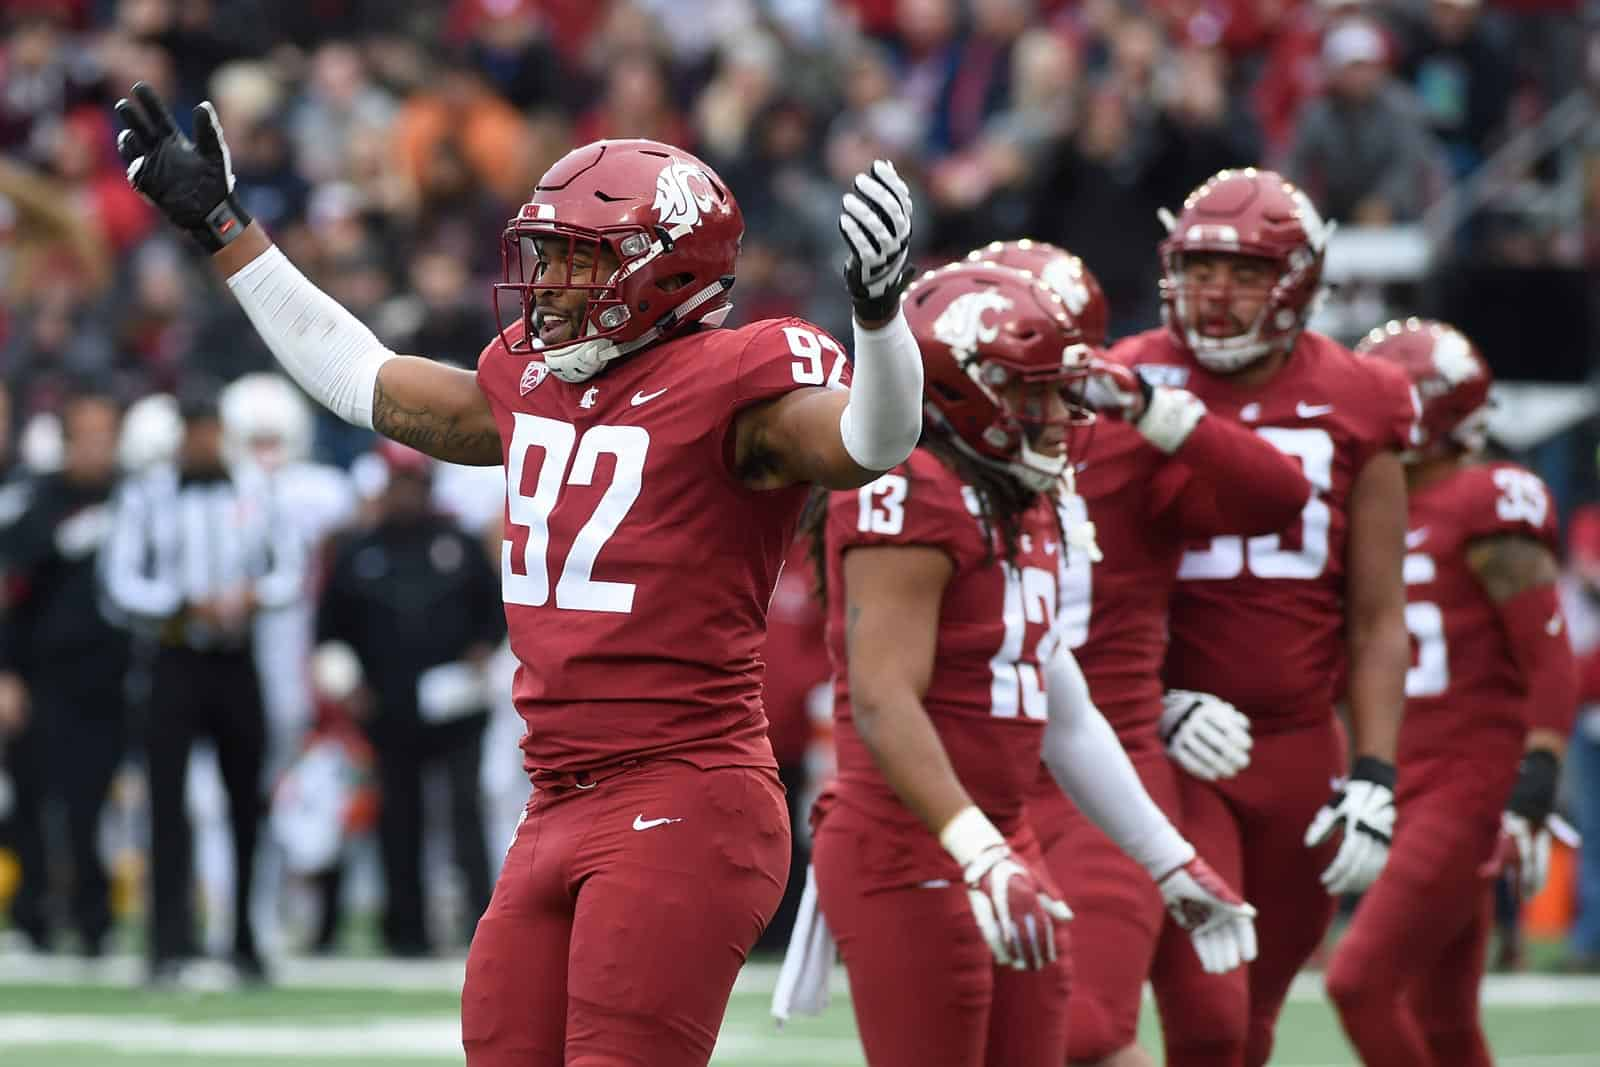 2020 Washington State Cougars football schedule